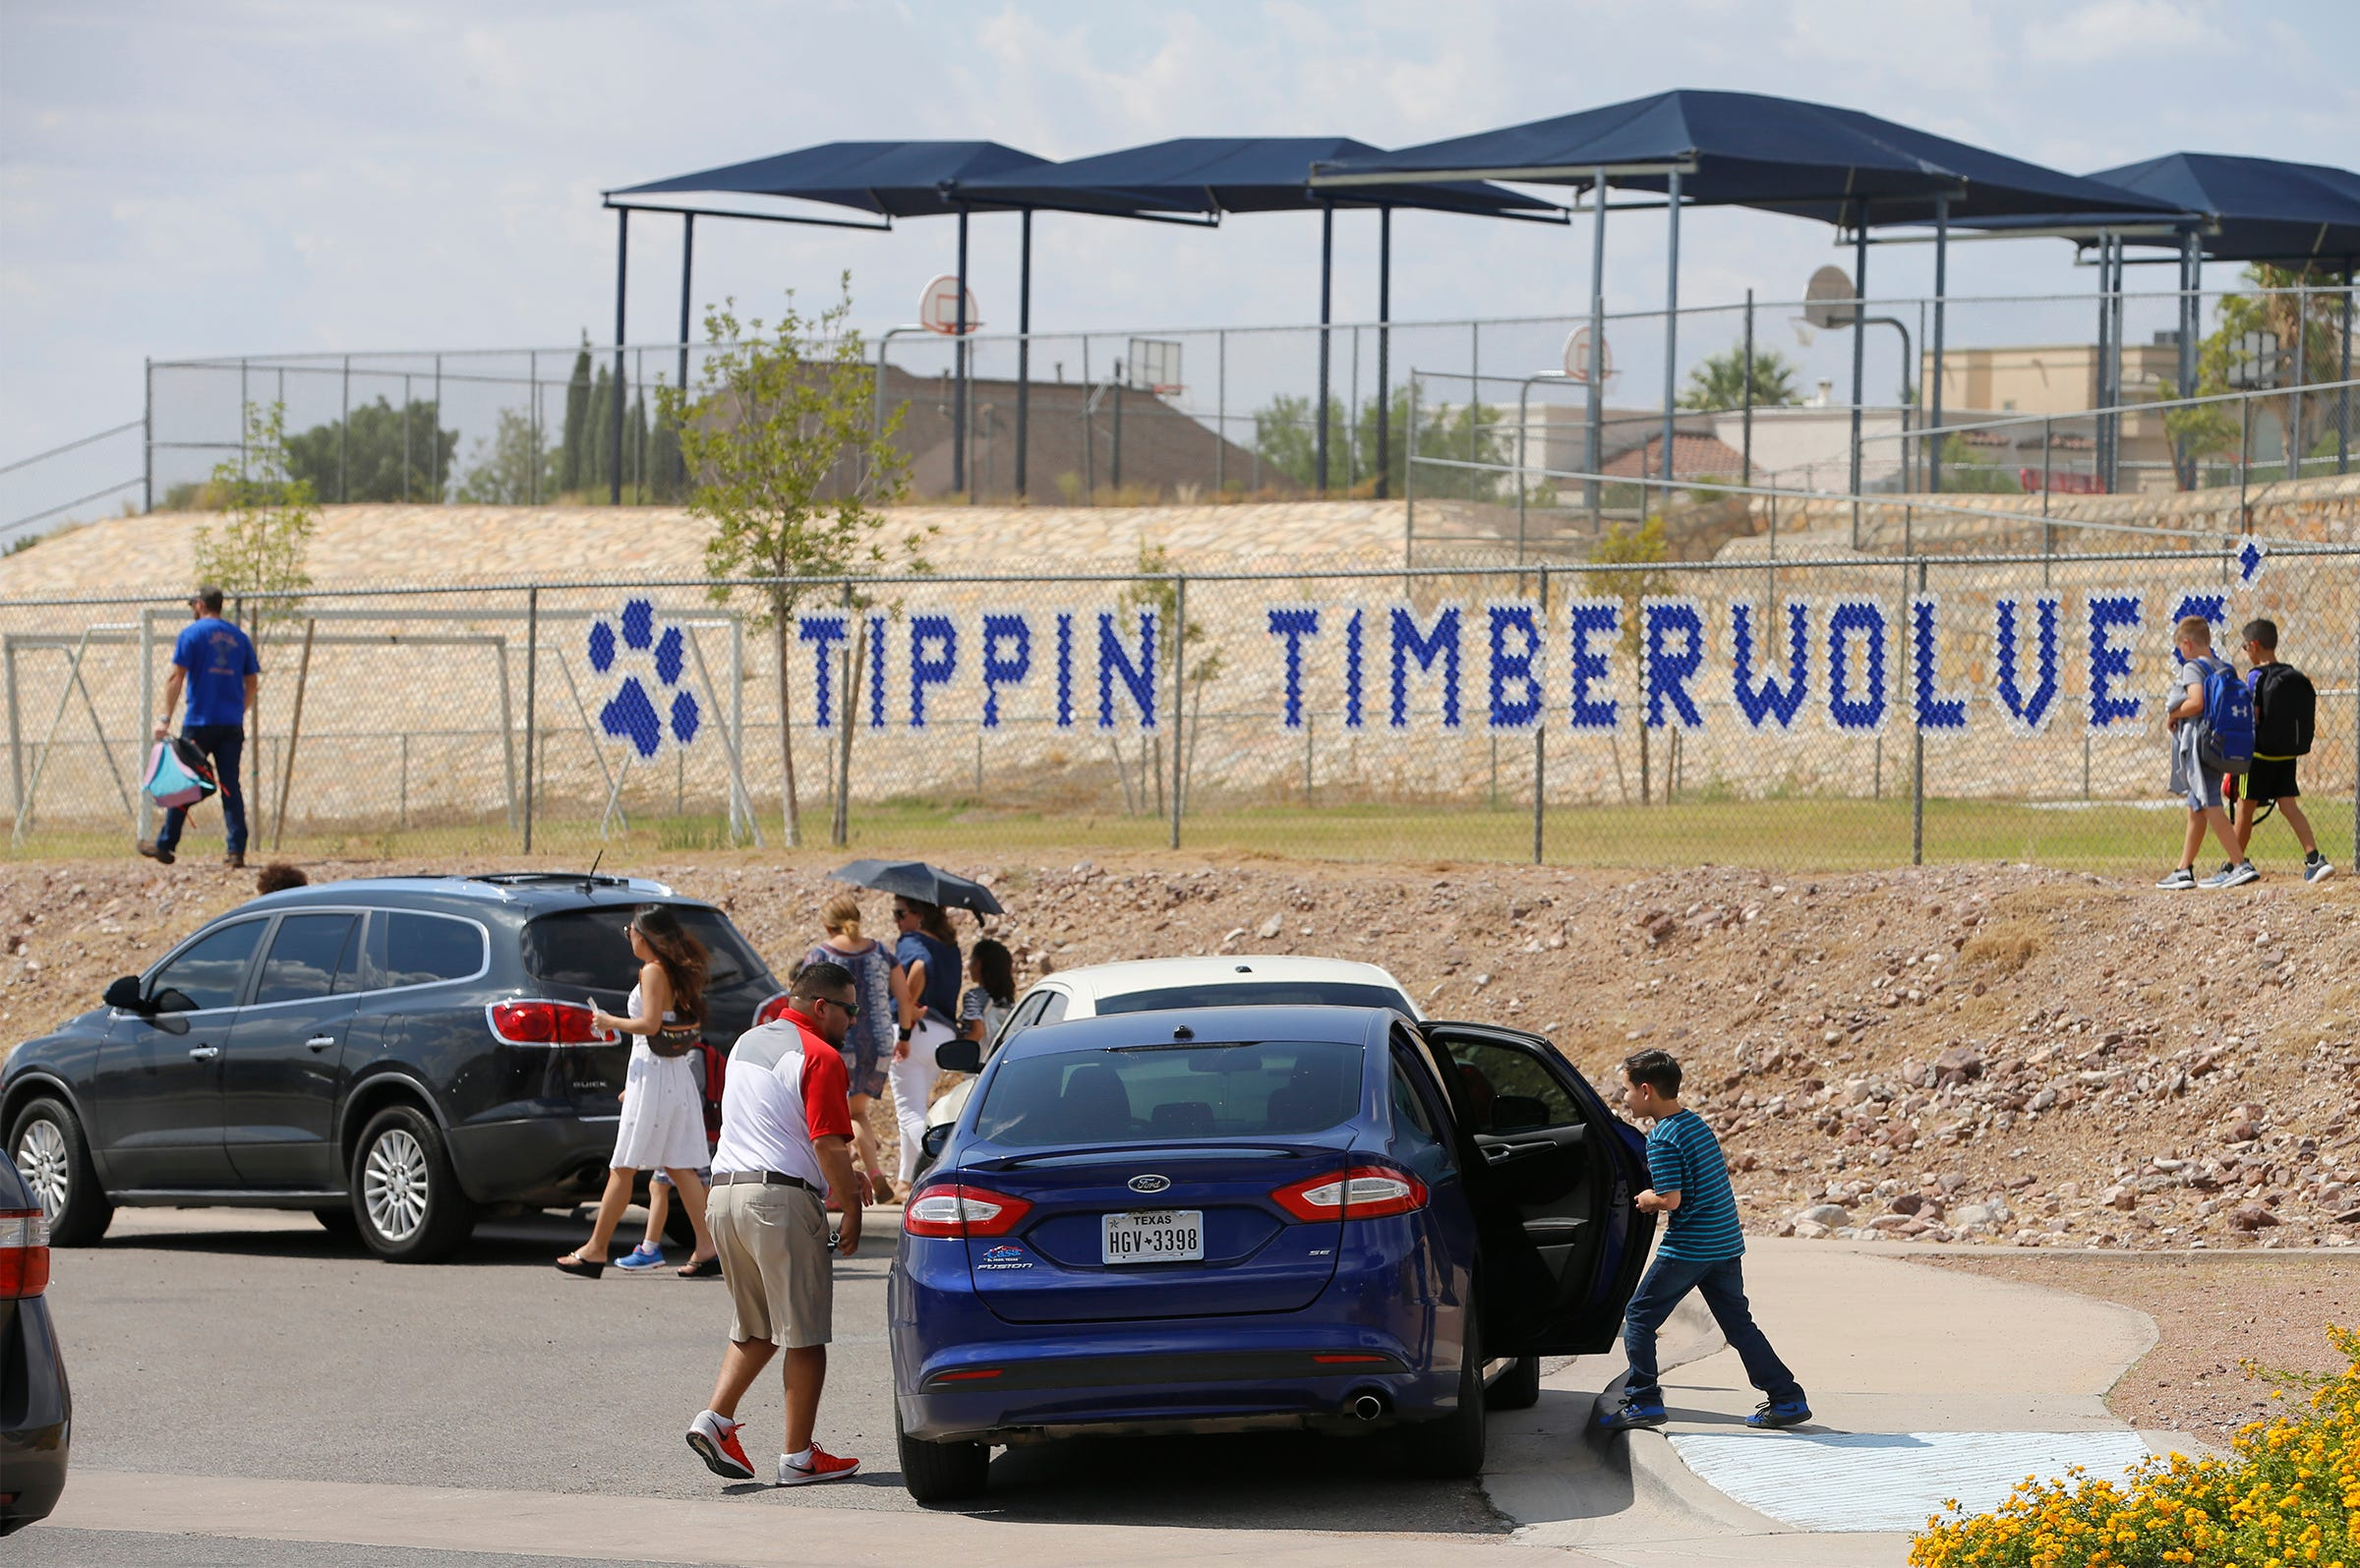 Tippin Elementary accident: 2 of 3 children out of hospital, EPISD corrects name of driver | El Paso Times